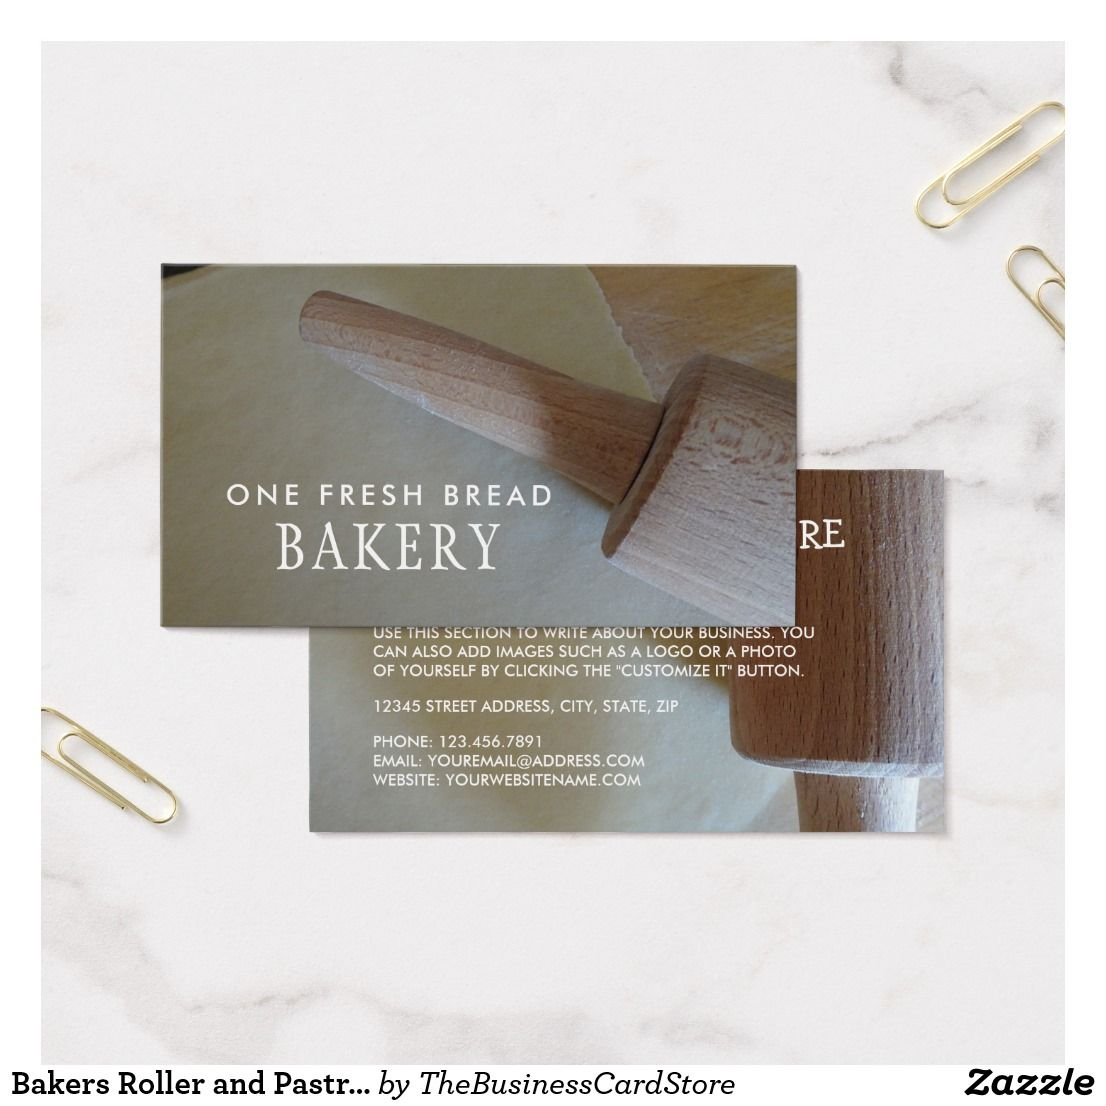 Bakers roller and pastry bakery business card bakery business bakers roller and pastry bakery business card colourmoves